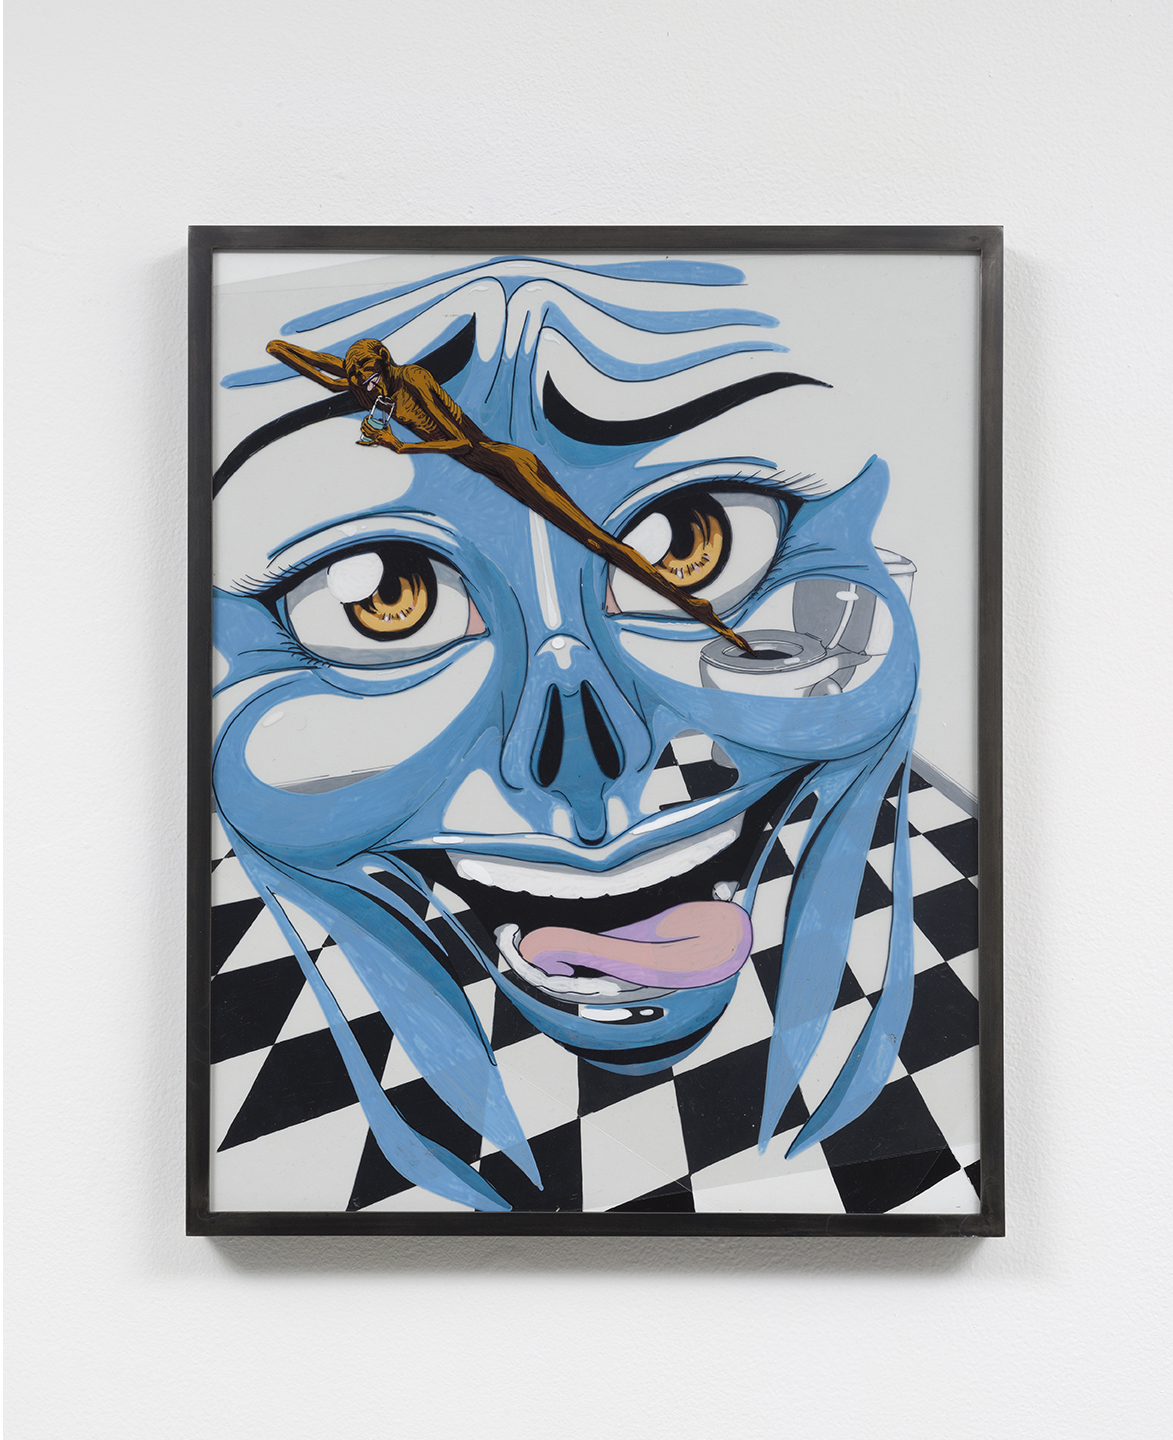 Julien Ceccaldi - Blue Face, 2016, Acrylic on acetate on board in aluminum frame, 16.75 x 21 inches